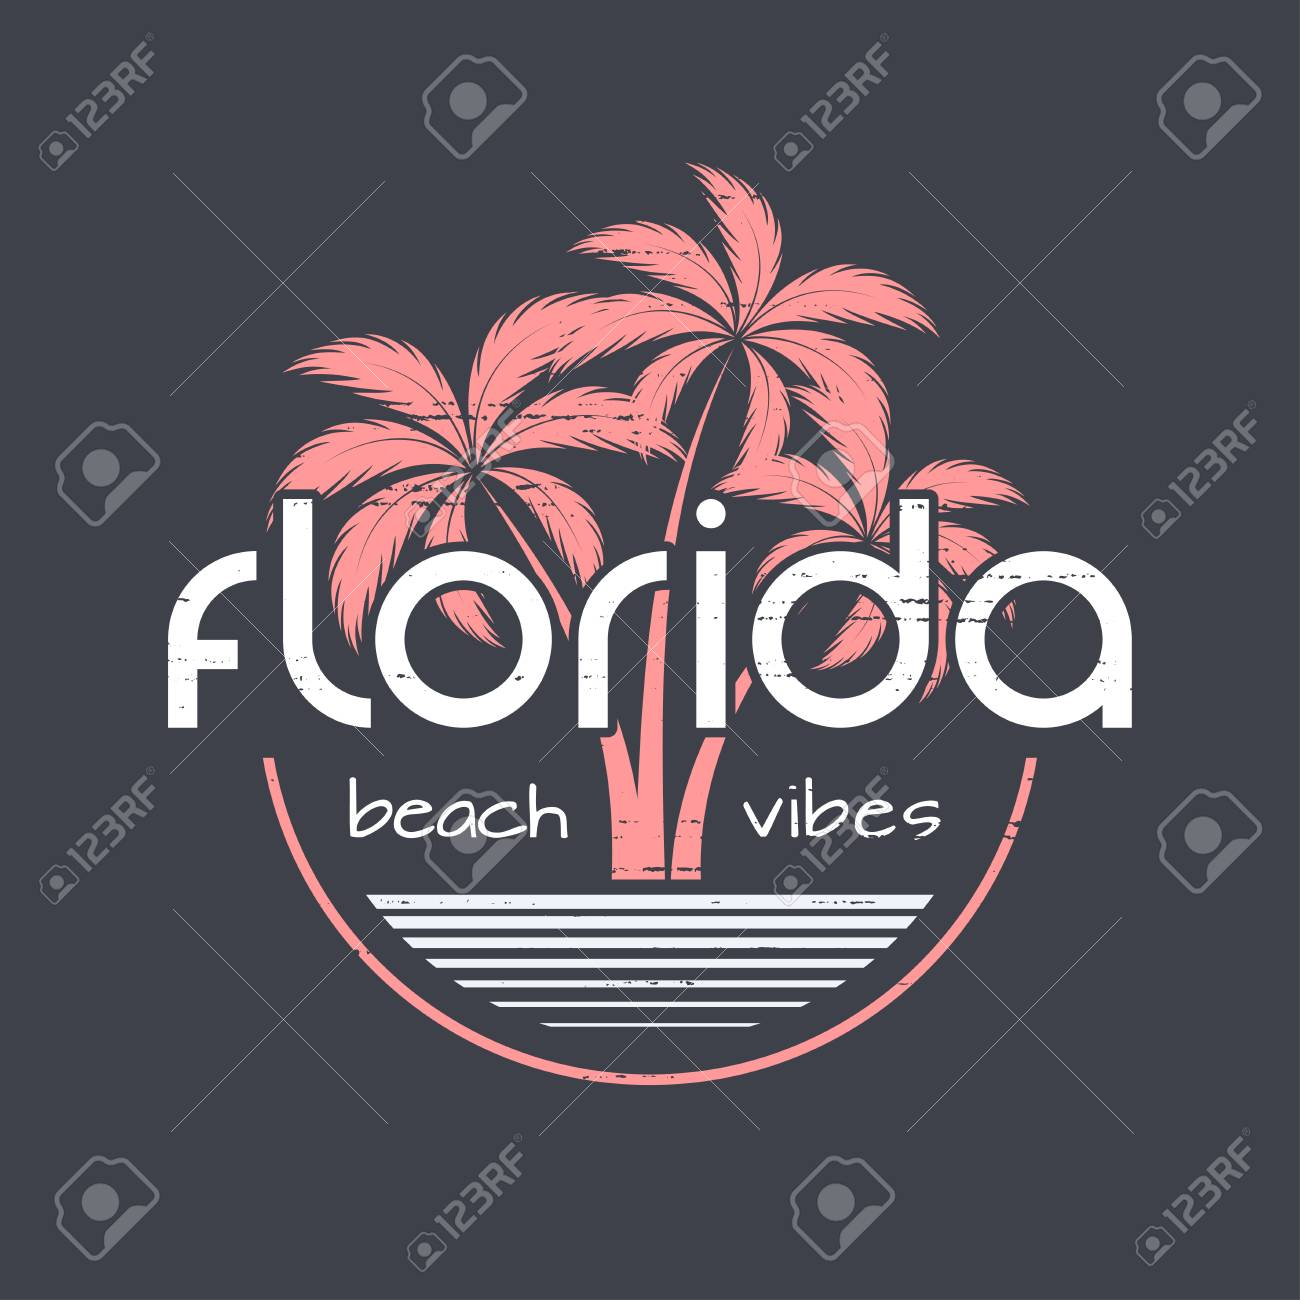 A Florida Beach Vibes T Shirt And Apparel Design Royalty Free